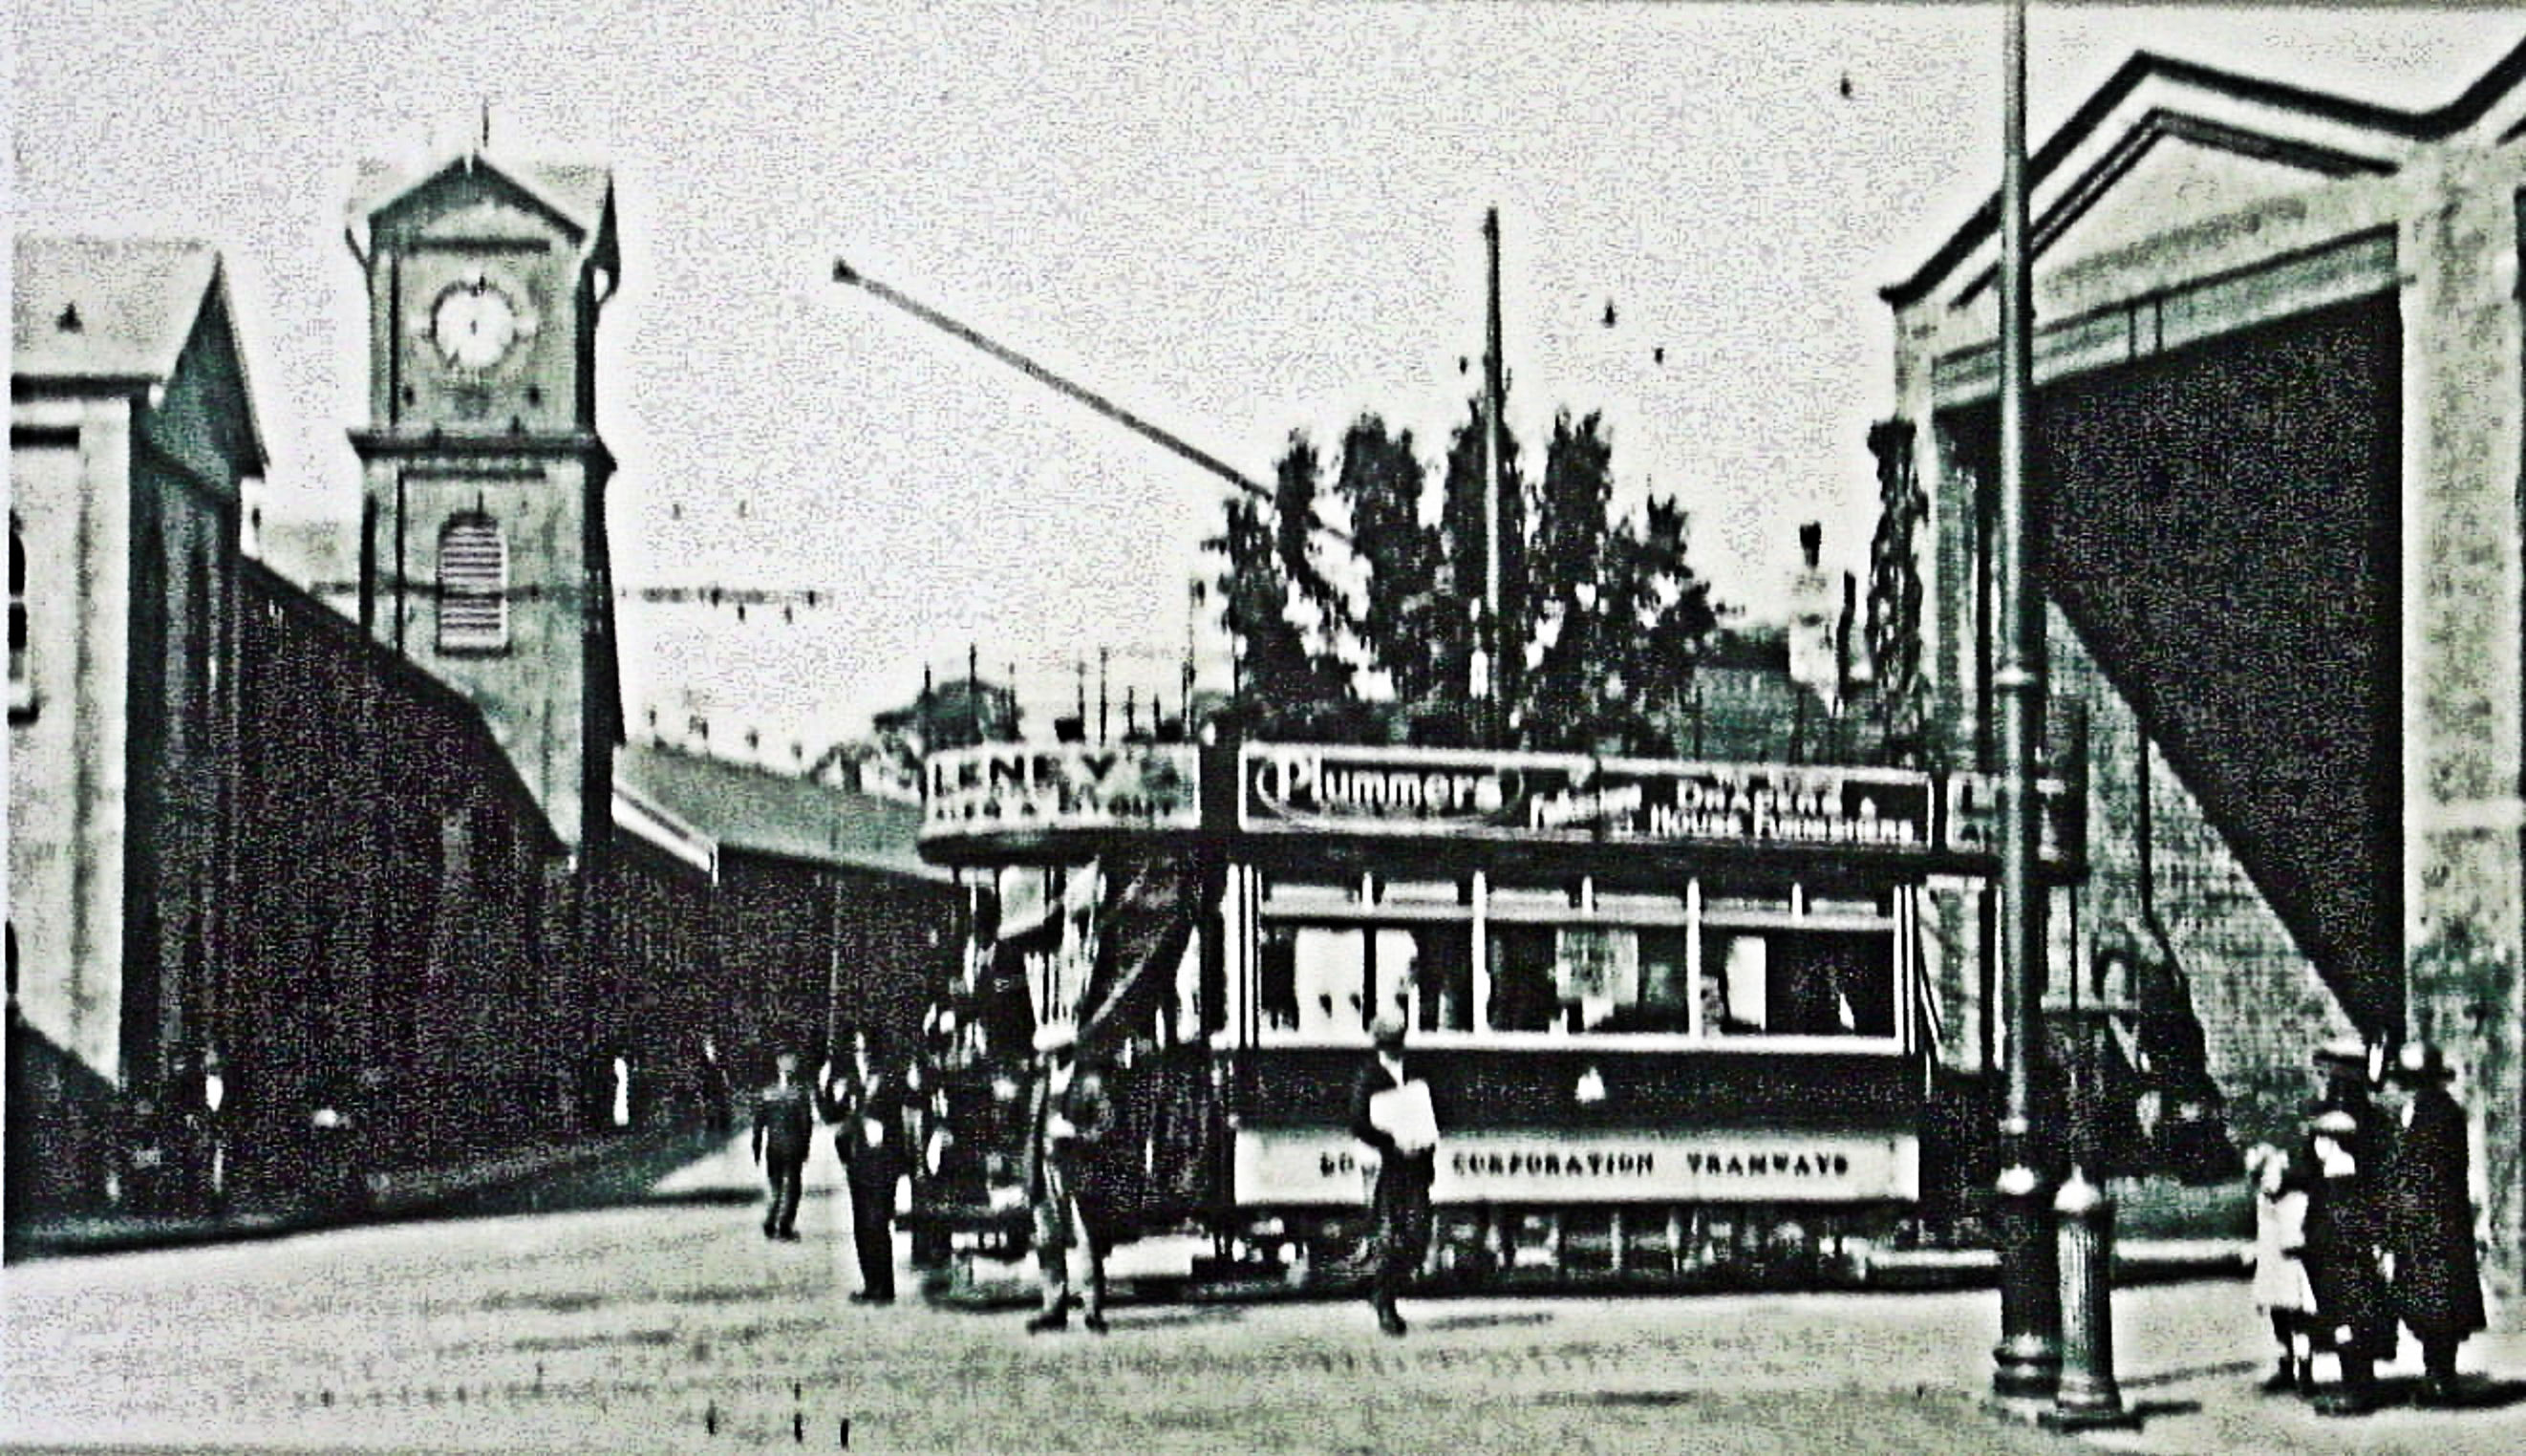 Le Meilleur Crabble Tram Accident – 19 August 1917 The Dover Historian Ce Mois Ci